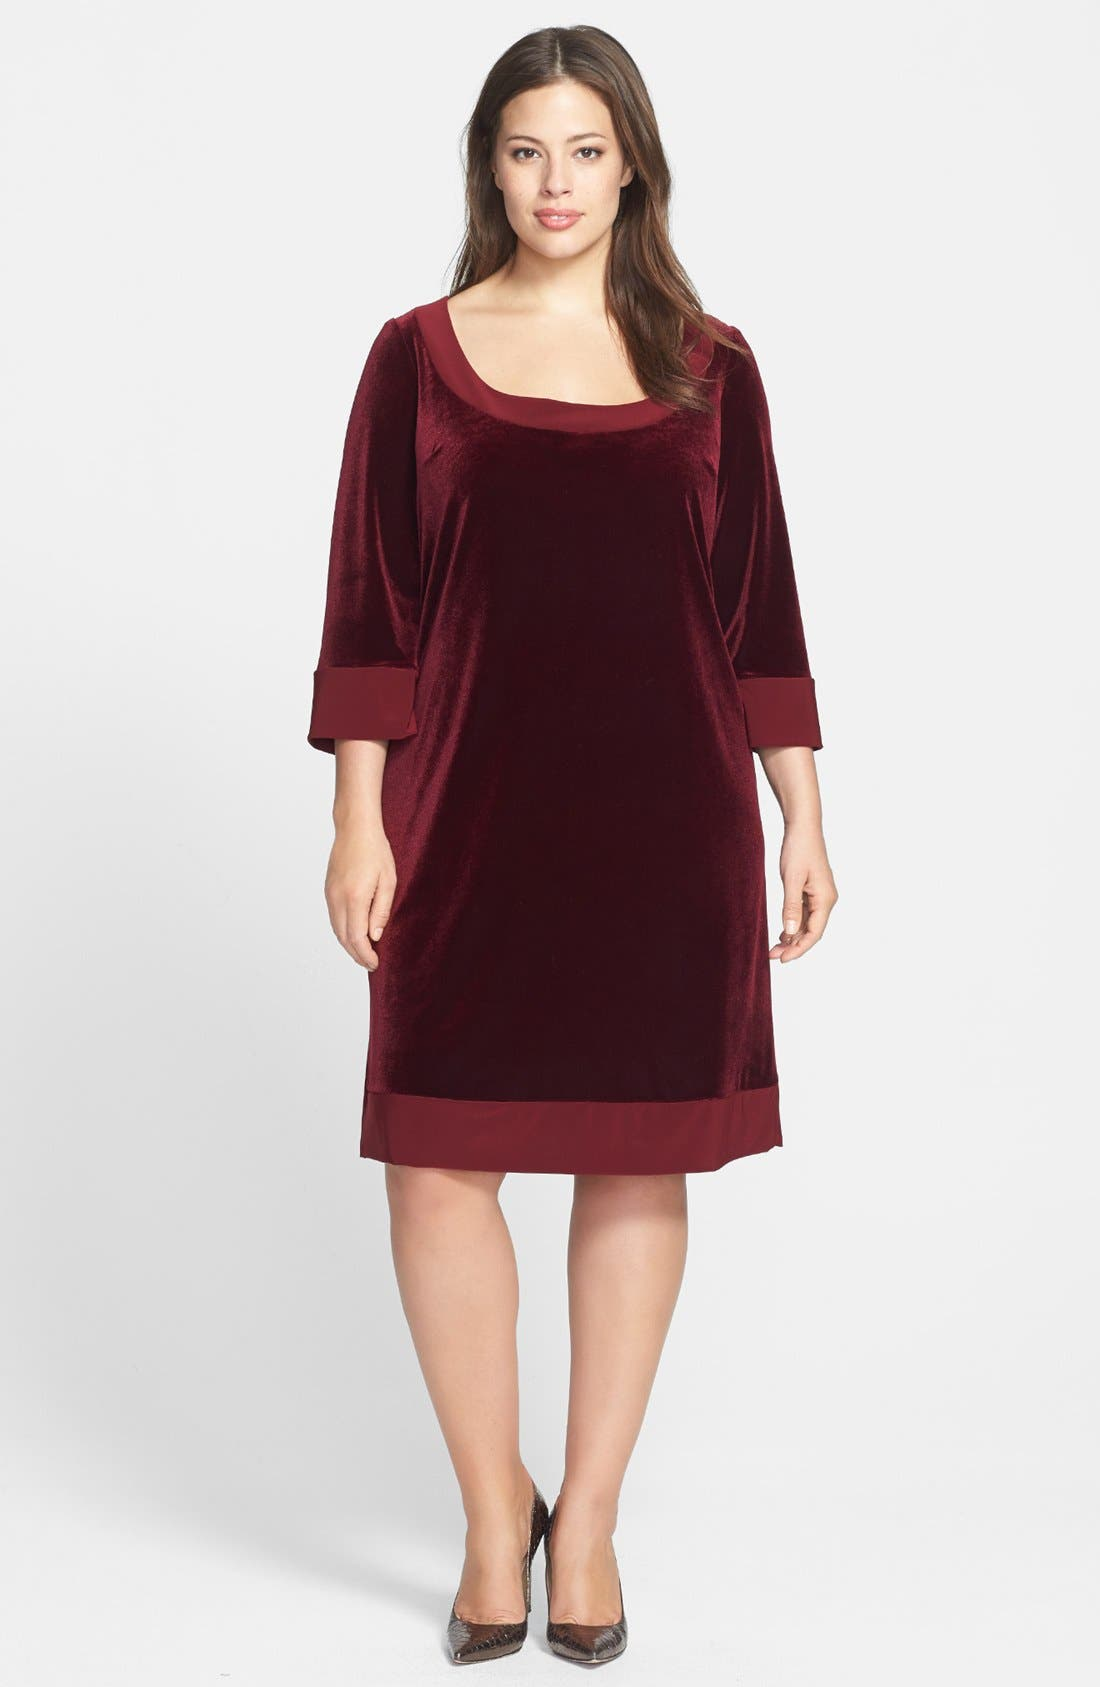 Alternate Image 1 Selected - ABS by Allen Schwartz Velvet Shift Dress (Plus Size)